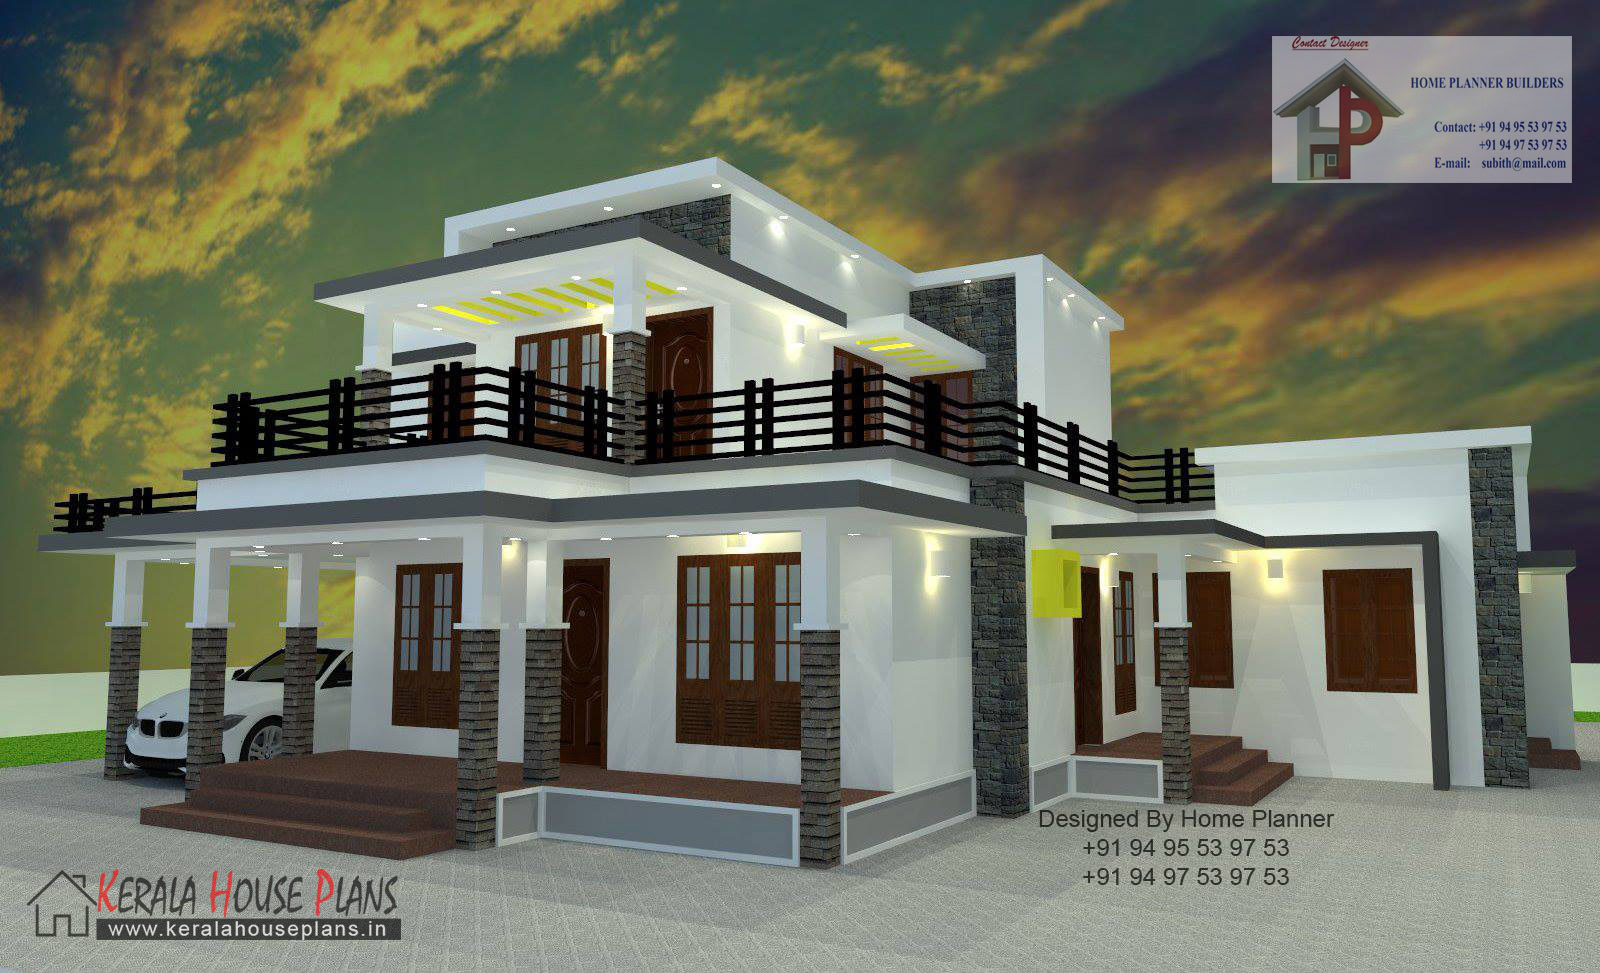 2000 sqft box type house kerala house plans designs for Types of house plans